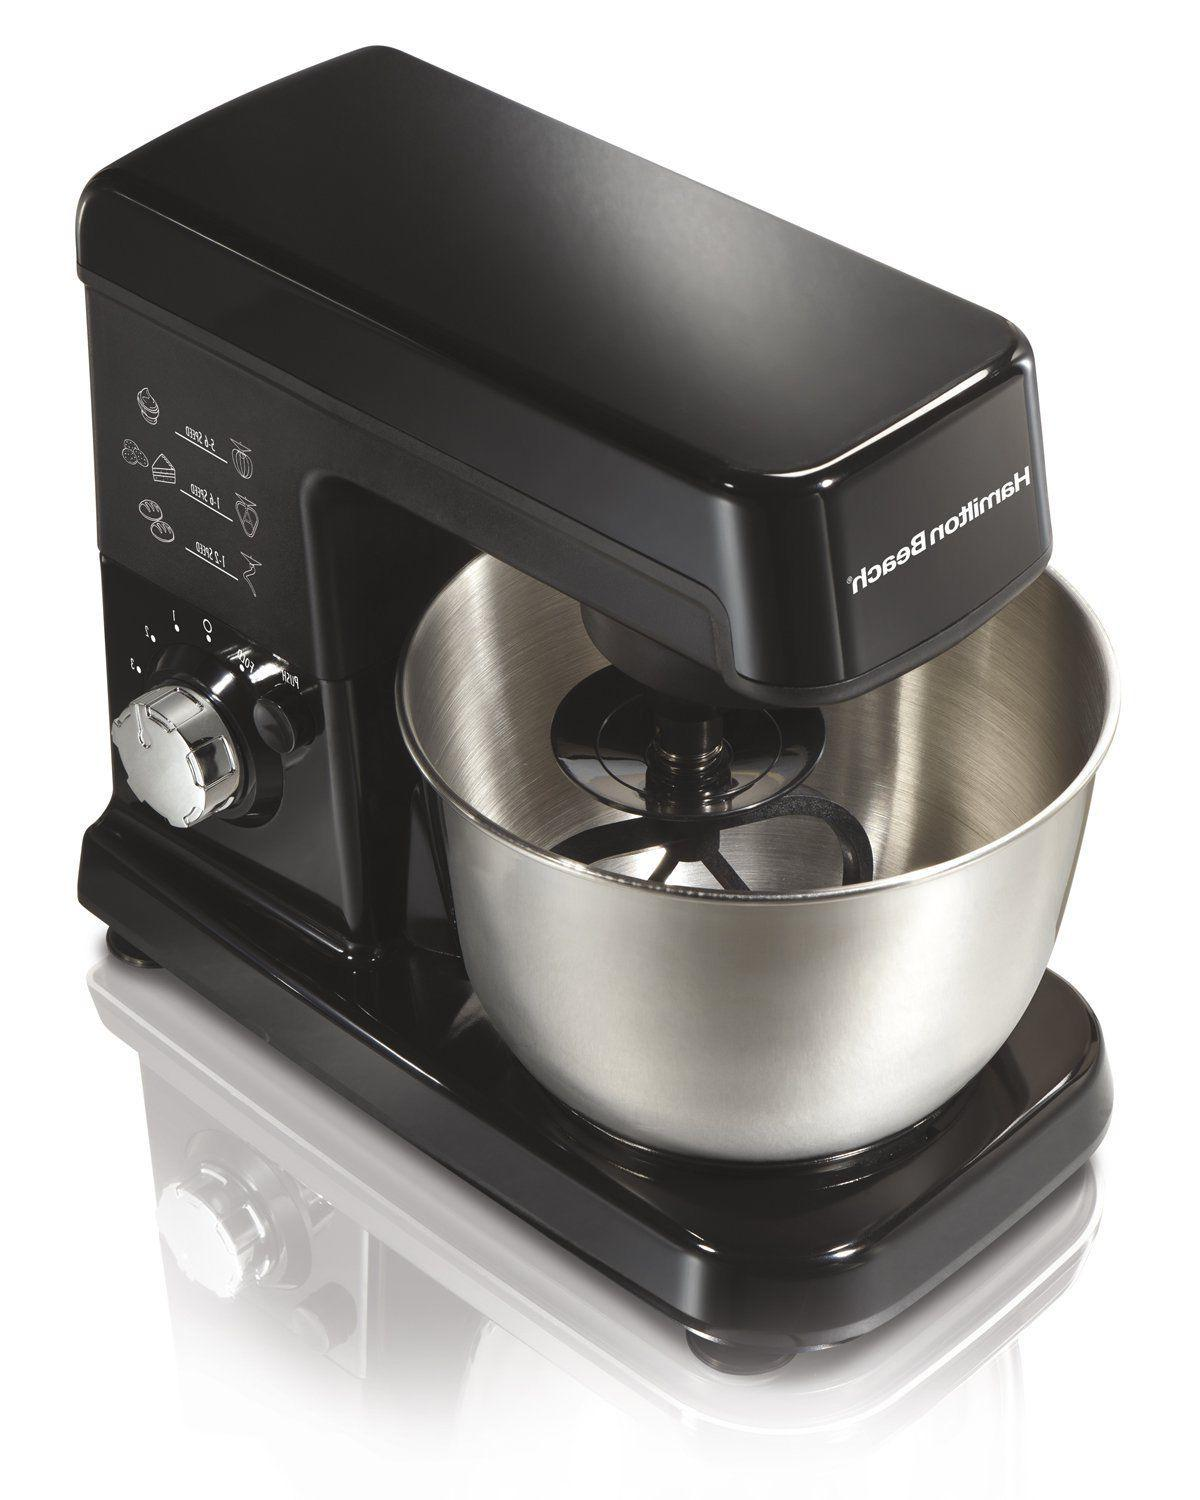 stand mixer cake 6 speeds house bowl